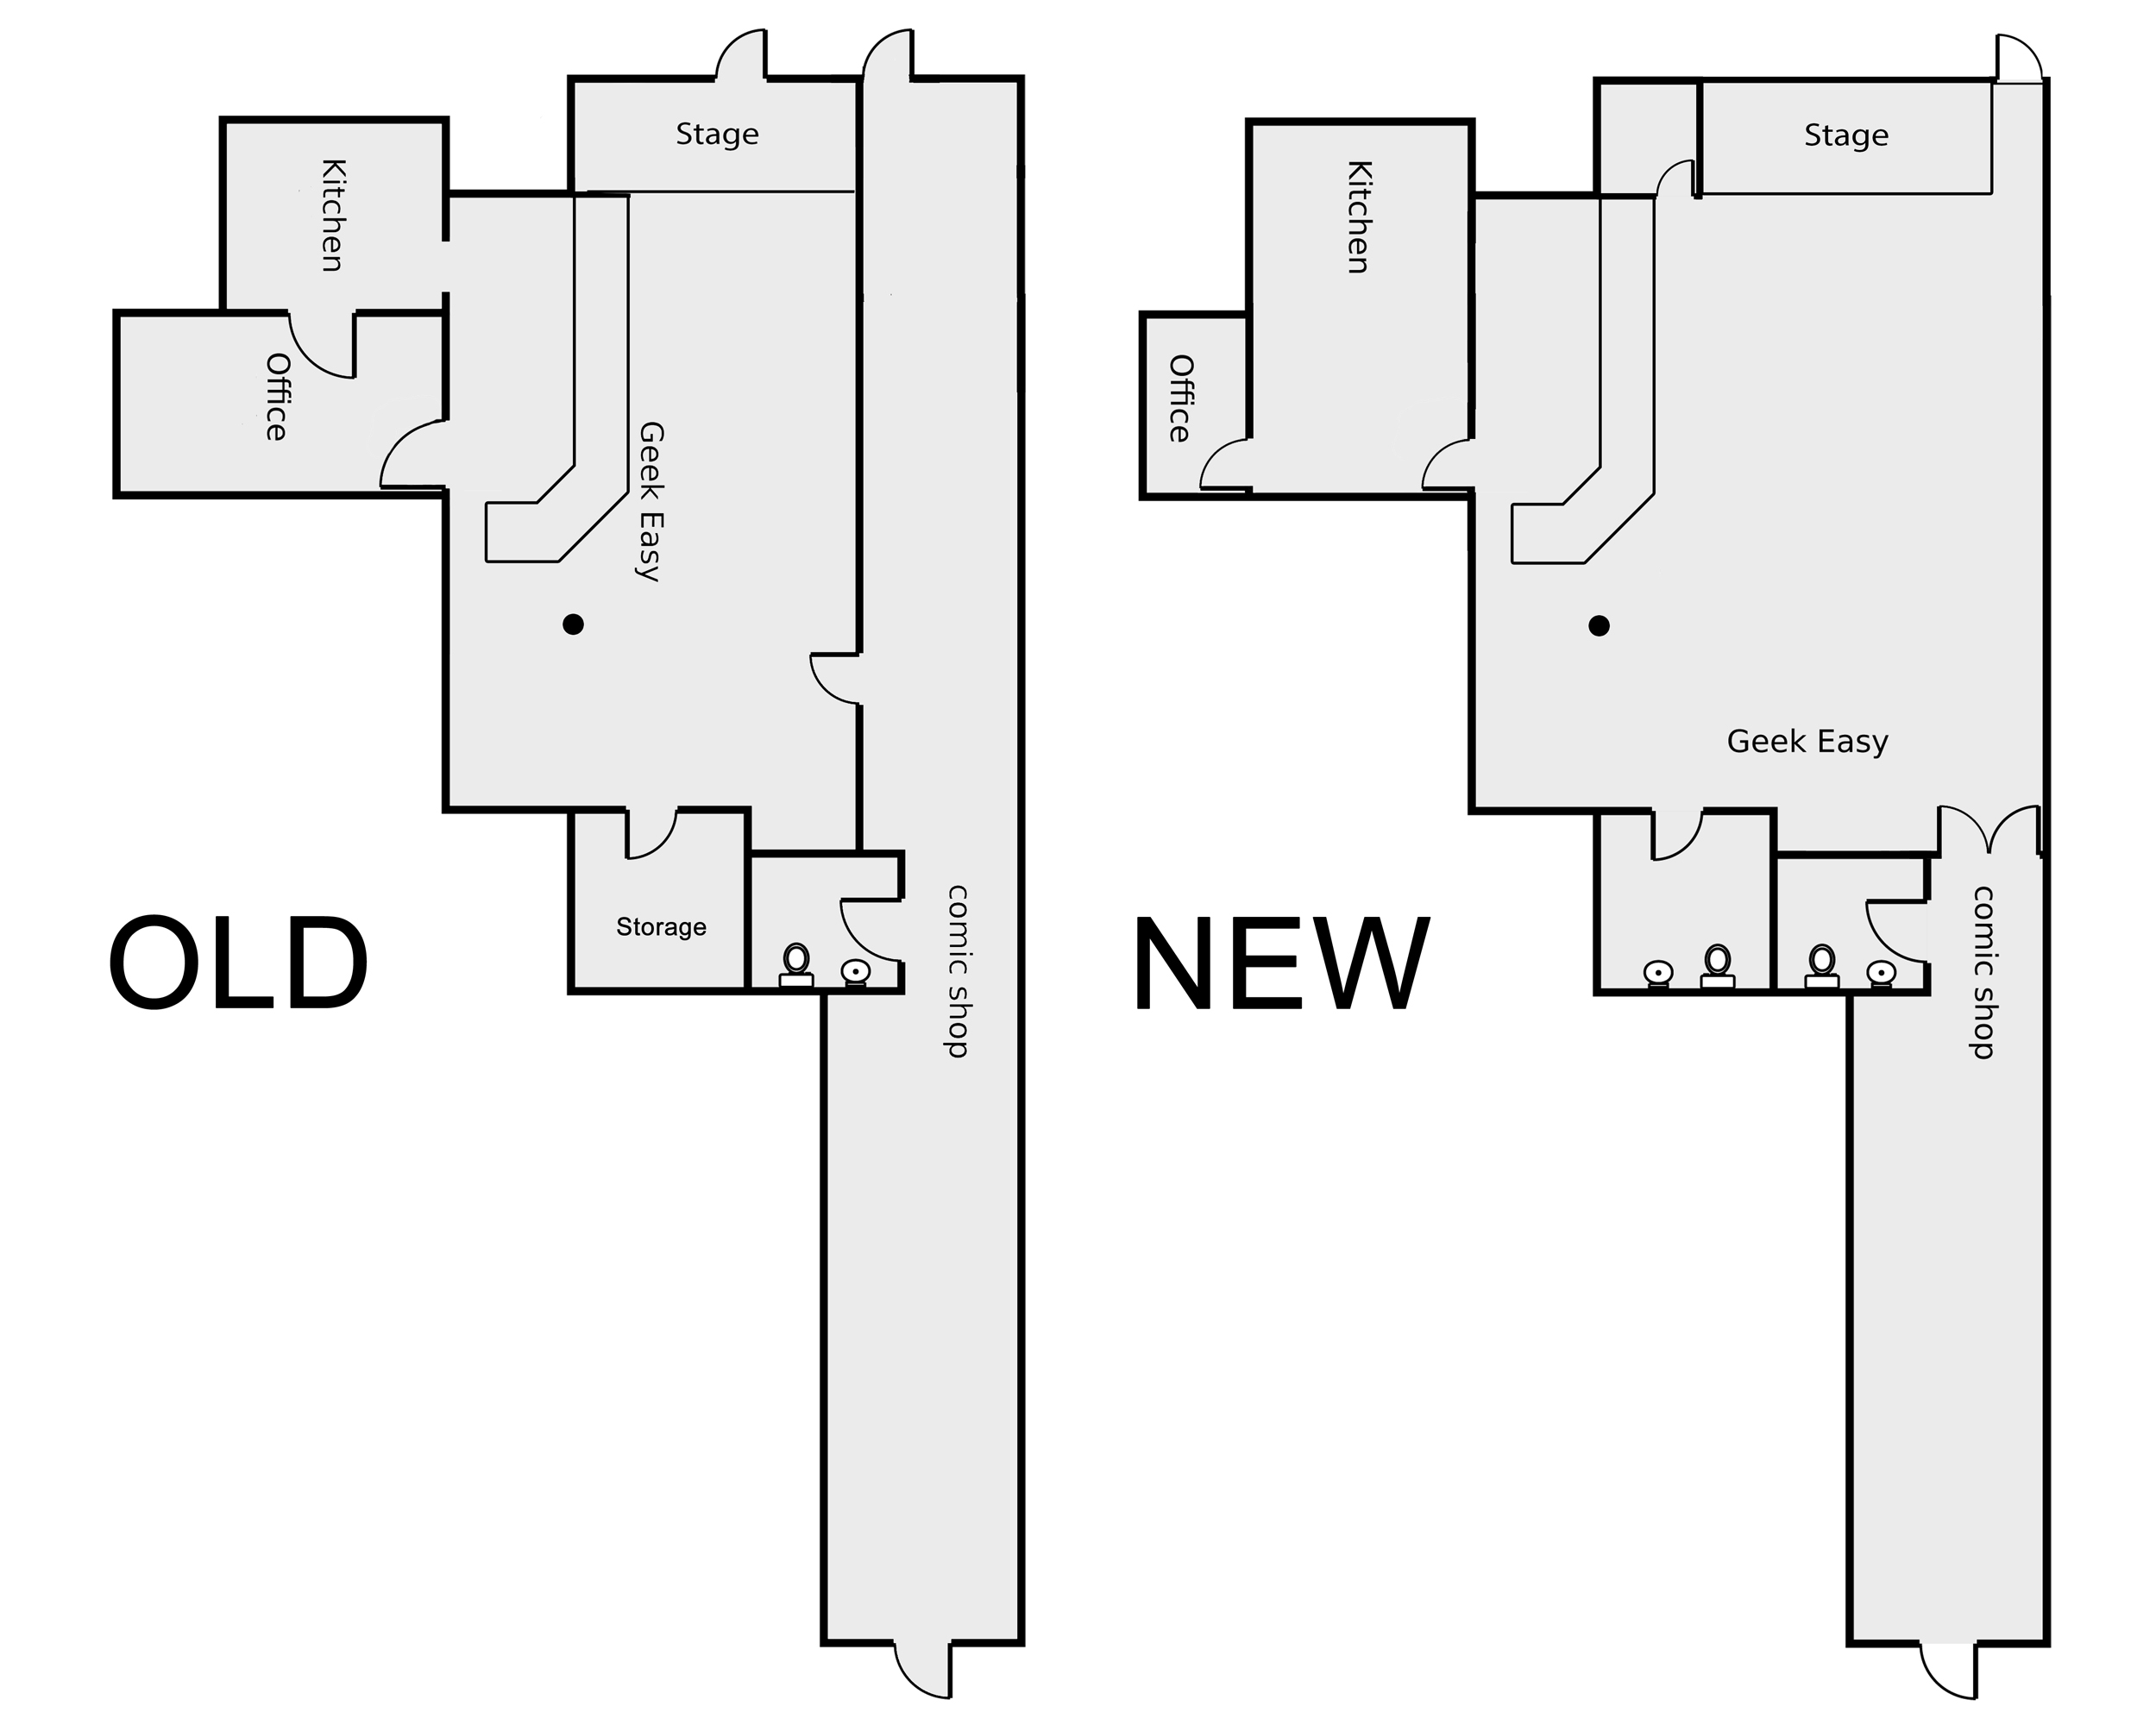 Inspirational New The Easy A Comic Shop Floorplans via Indiegogo